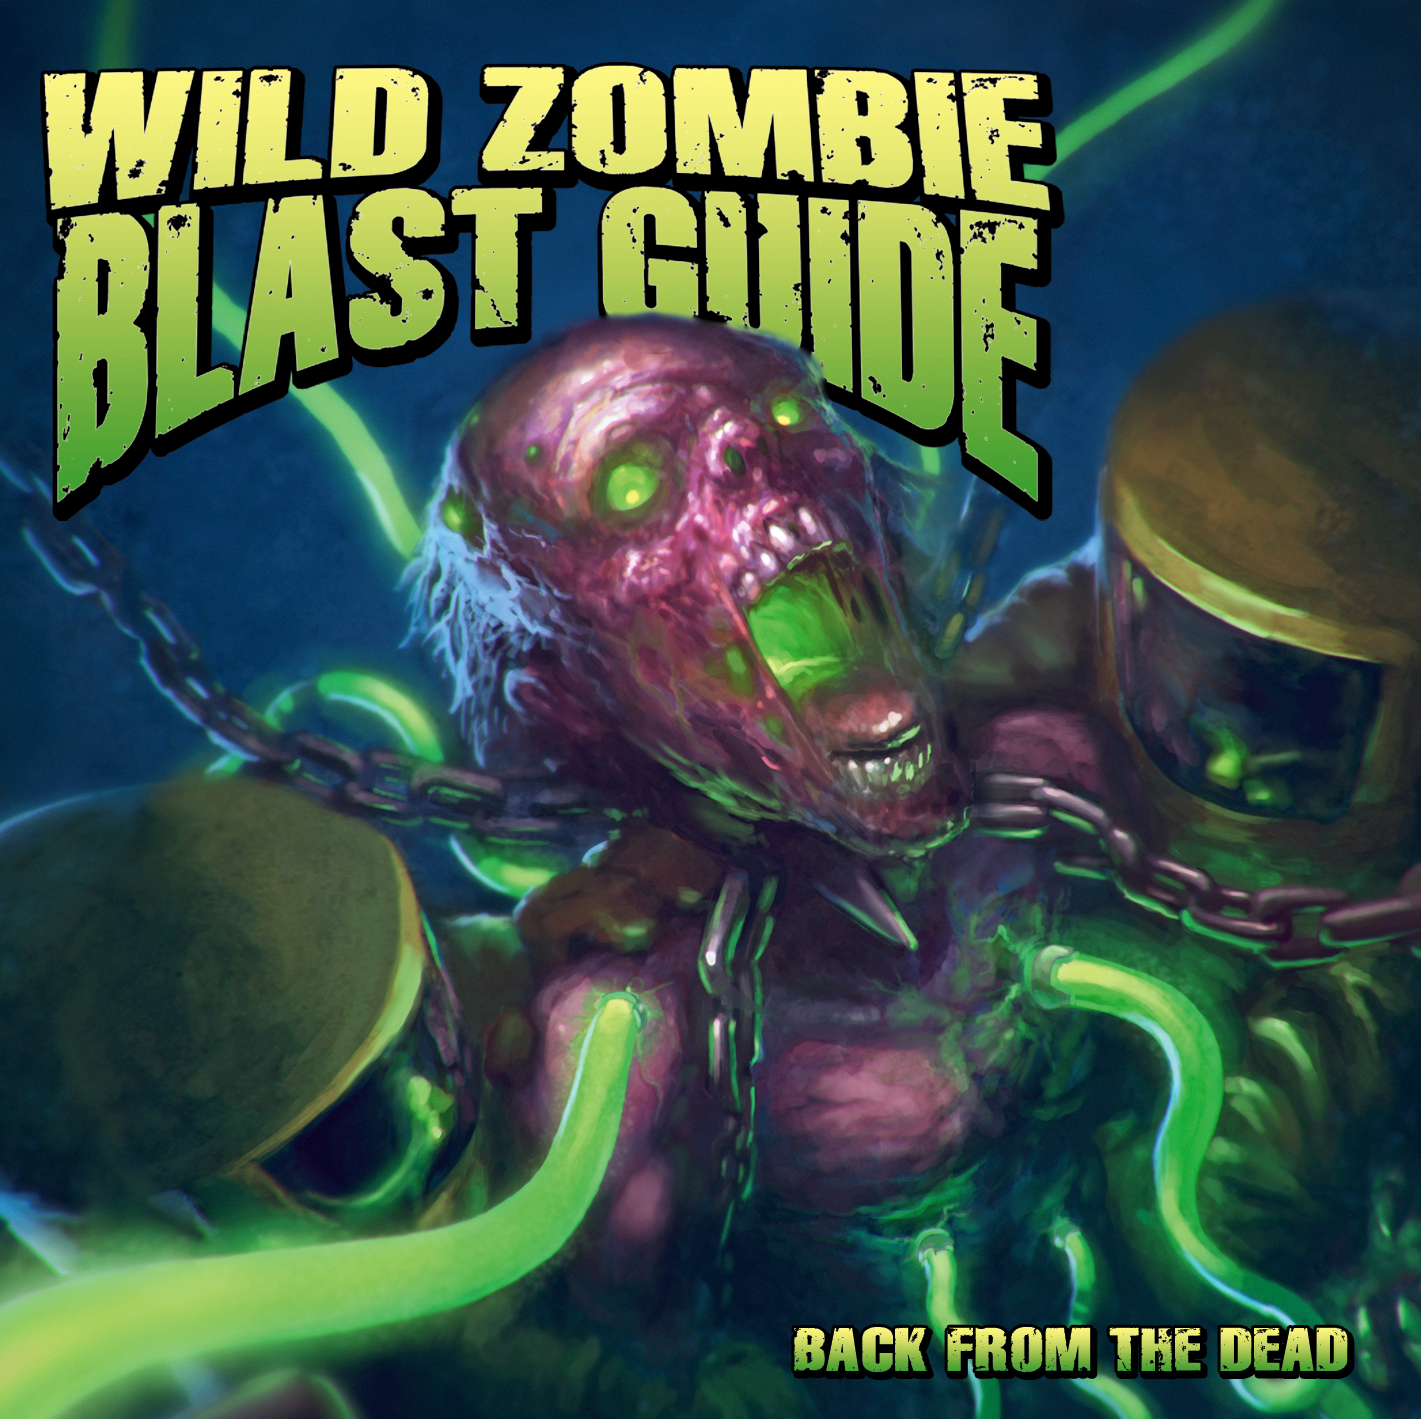 Wild Zombie Blast Guide BACK FROM THE DEAD